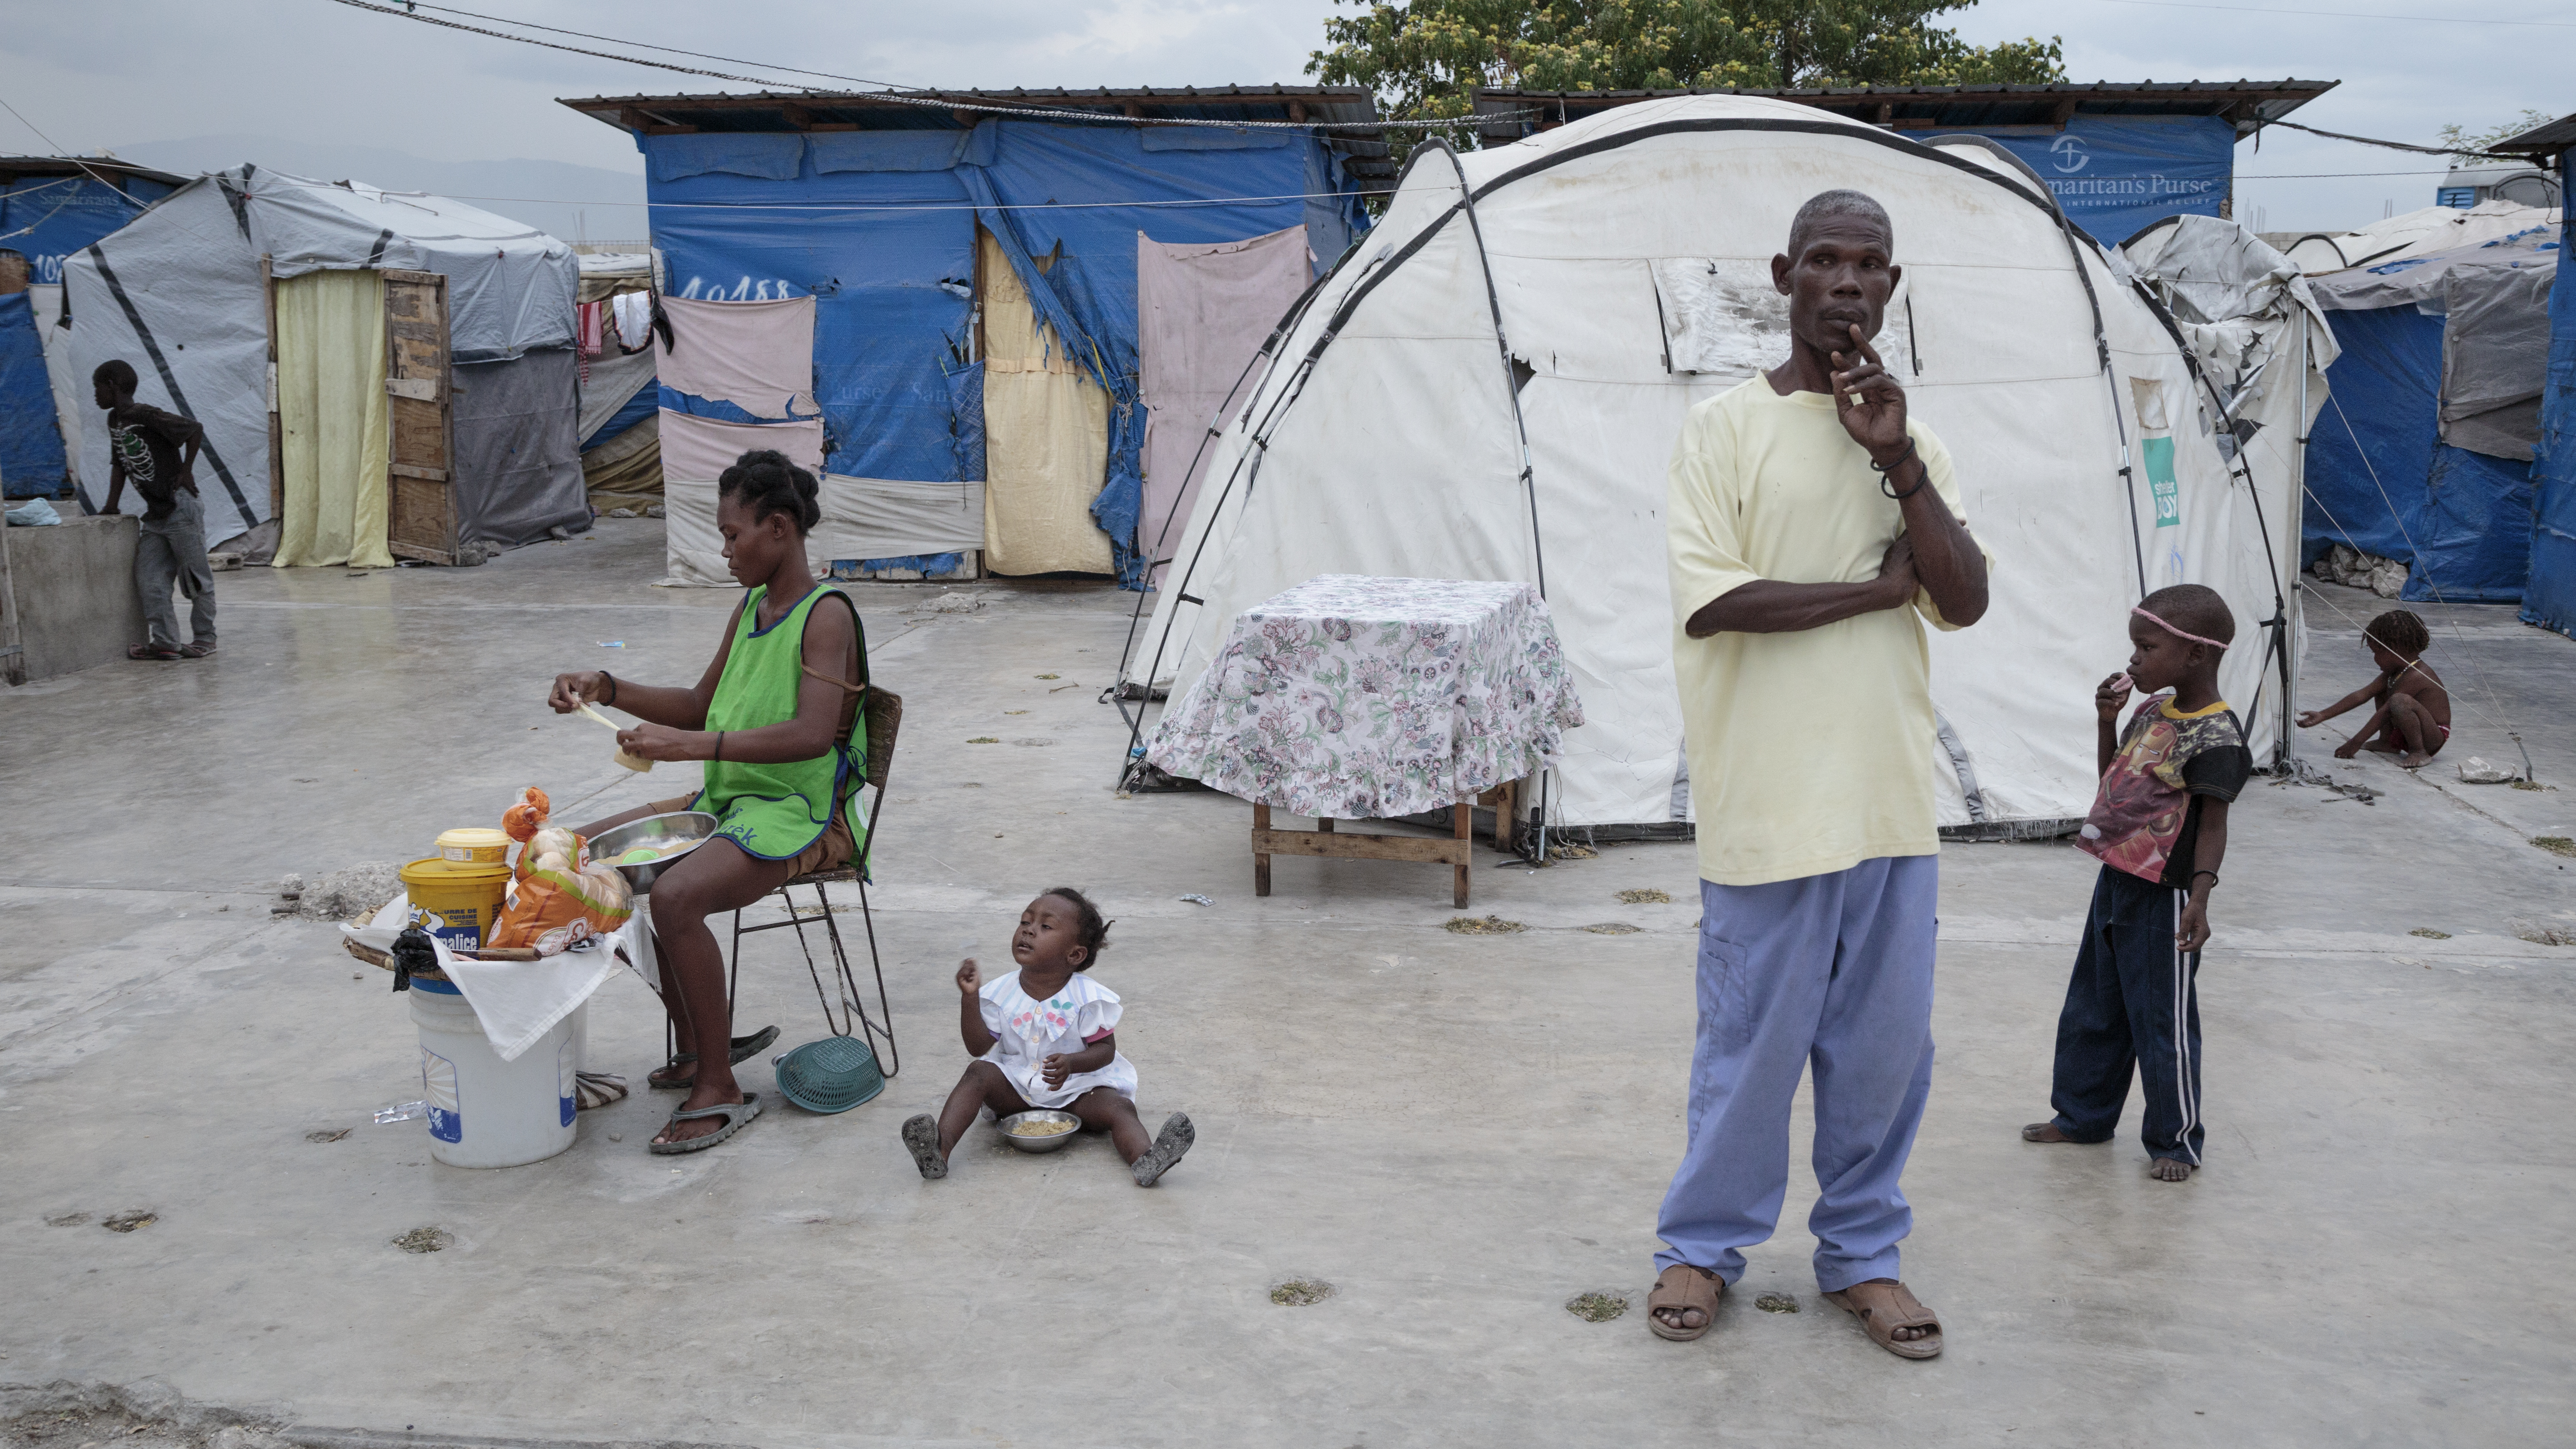 Social and living conditions in Haitian slums like Cité Soleil are a ...